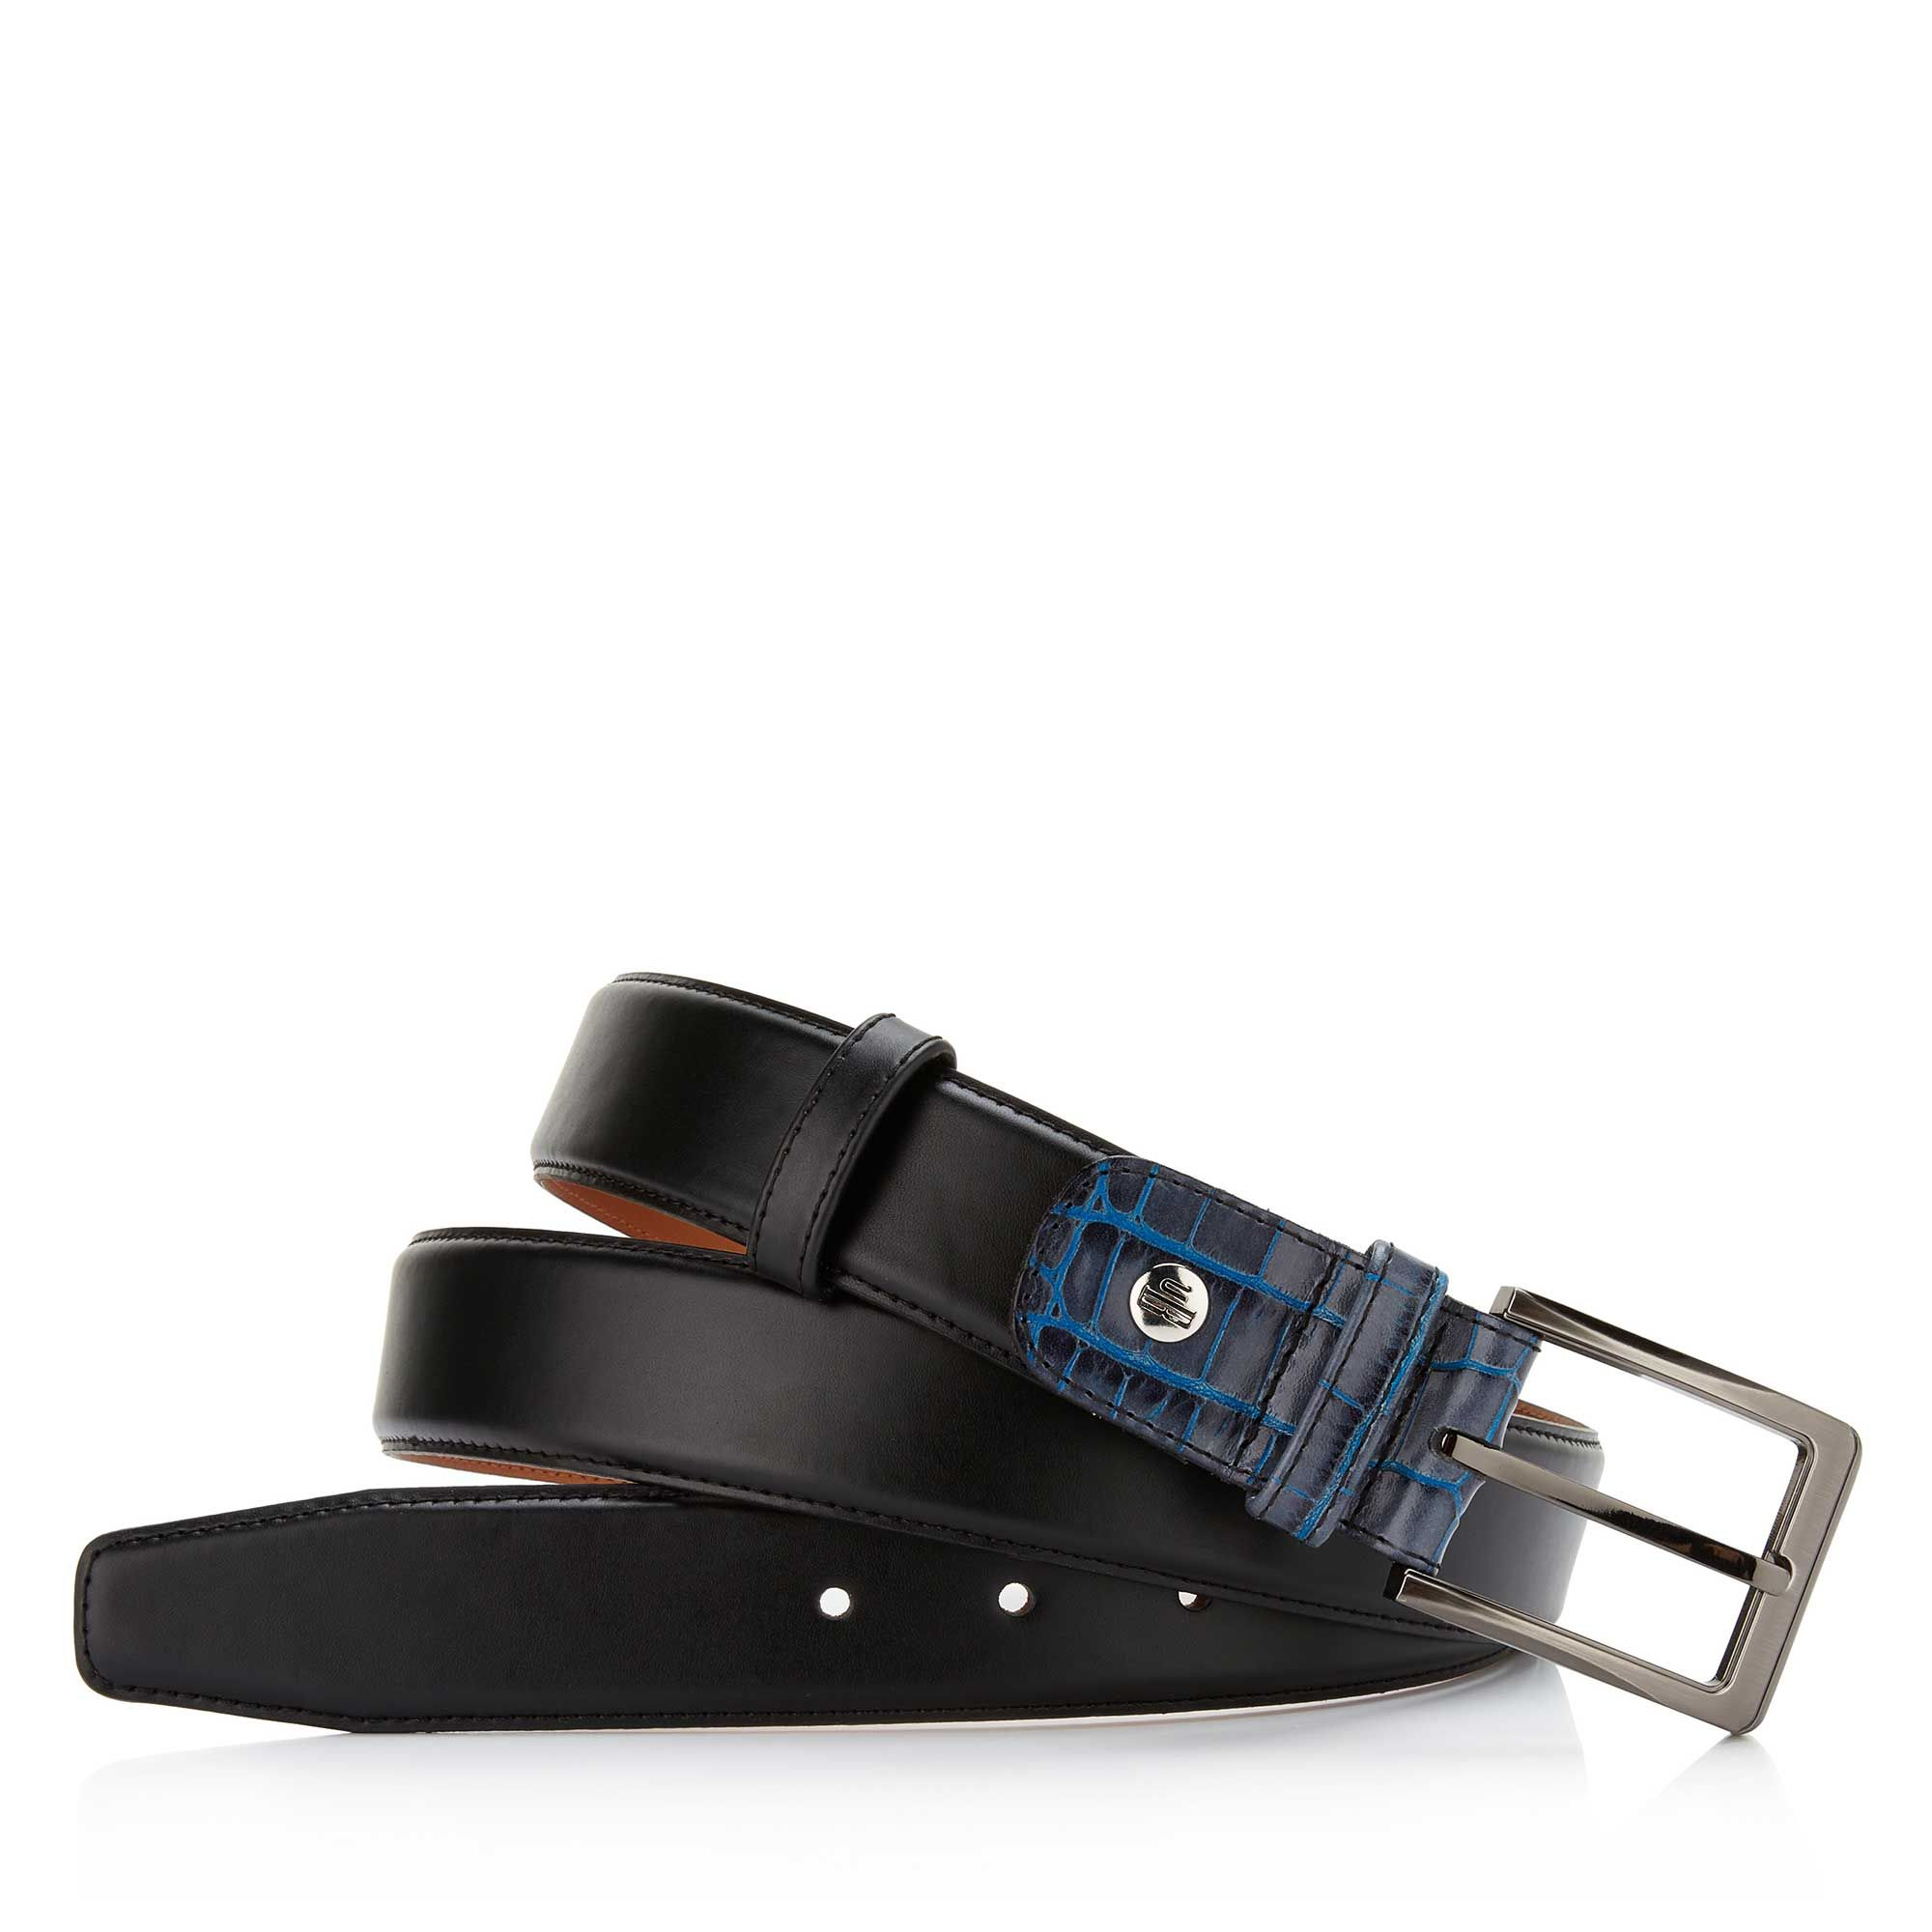 75055/01 - Black leather men's belt